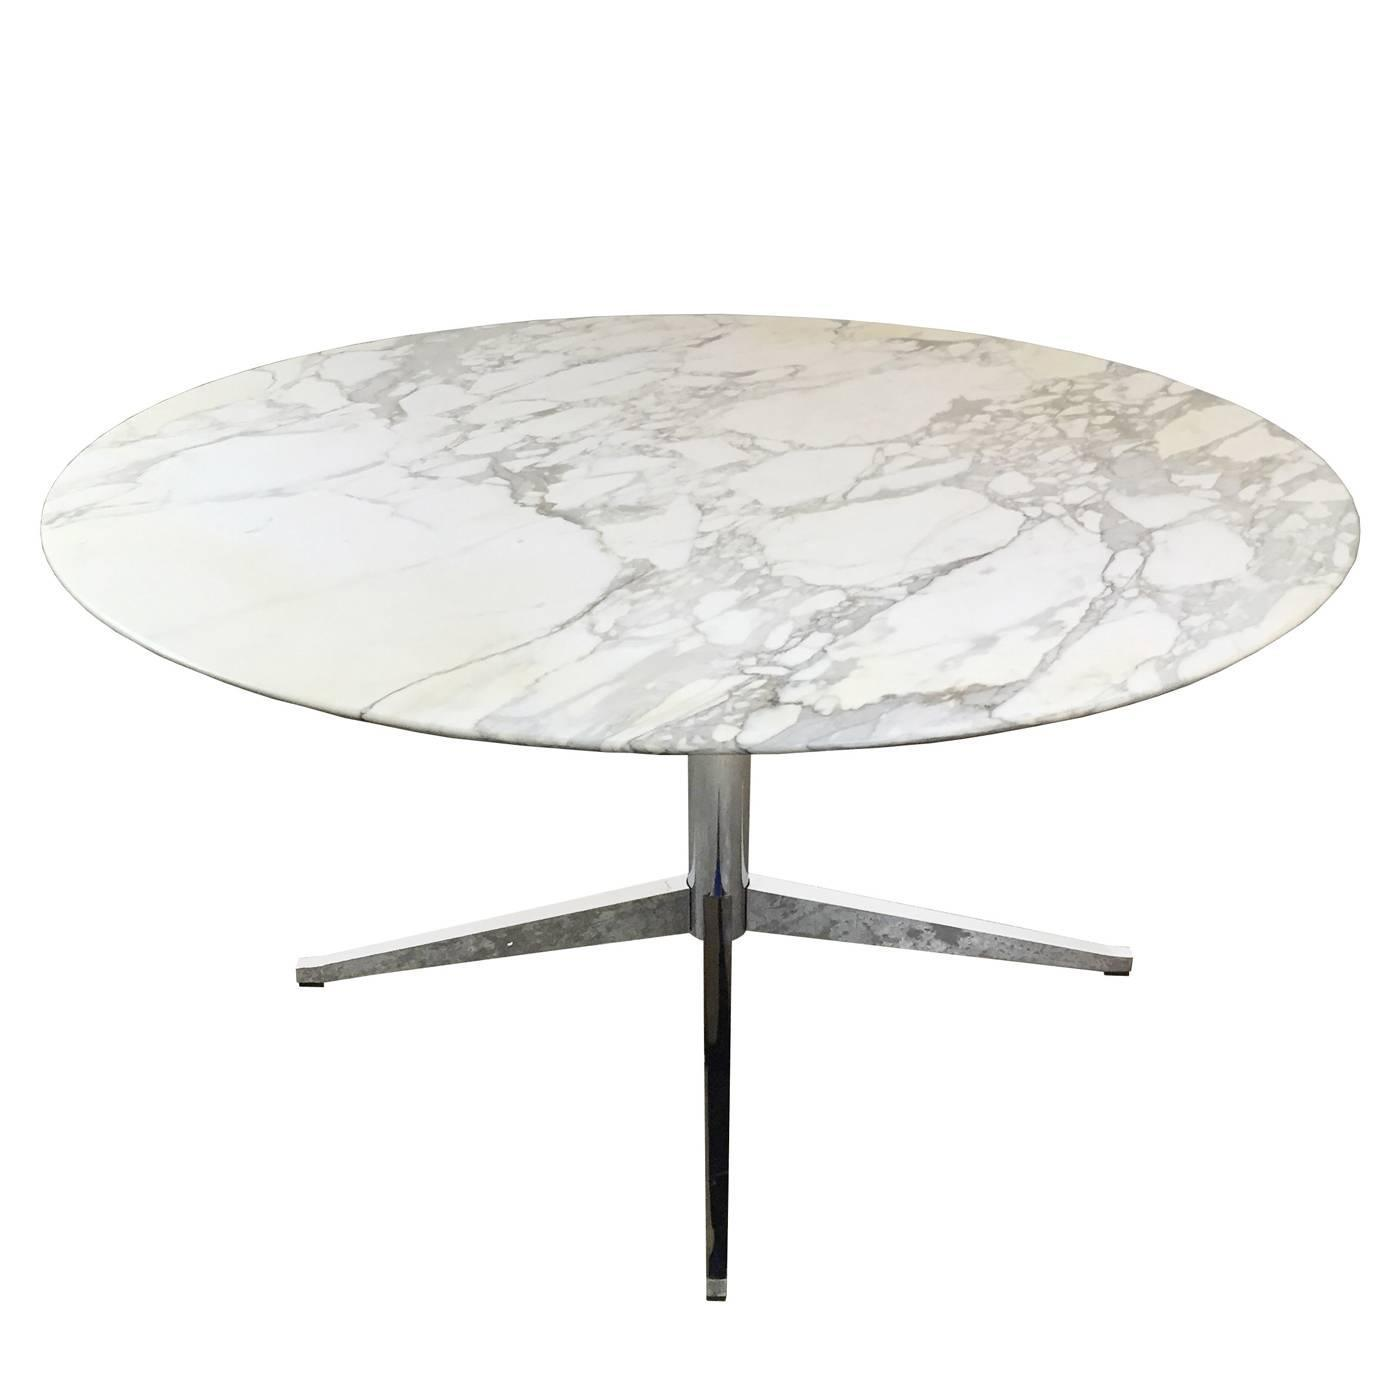 Round Carrara Marble Dining Conference Table by Florence